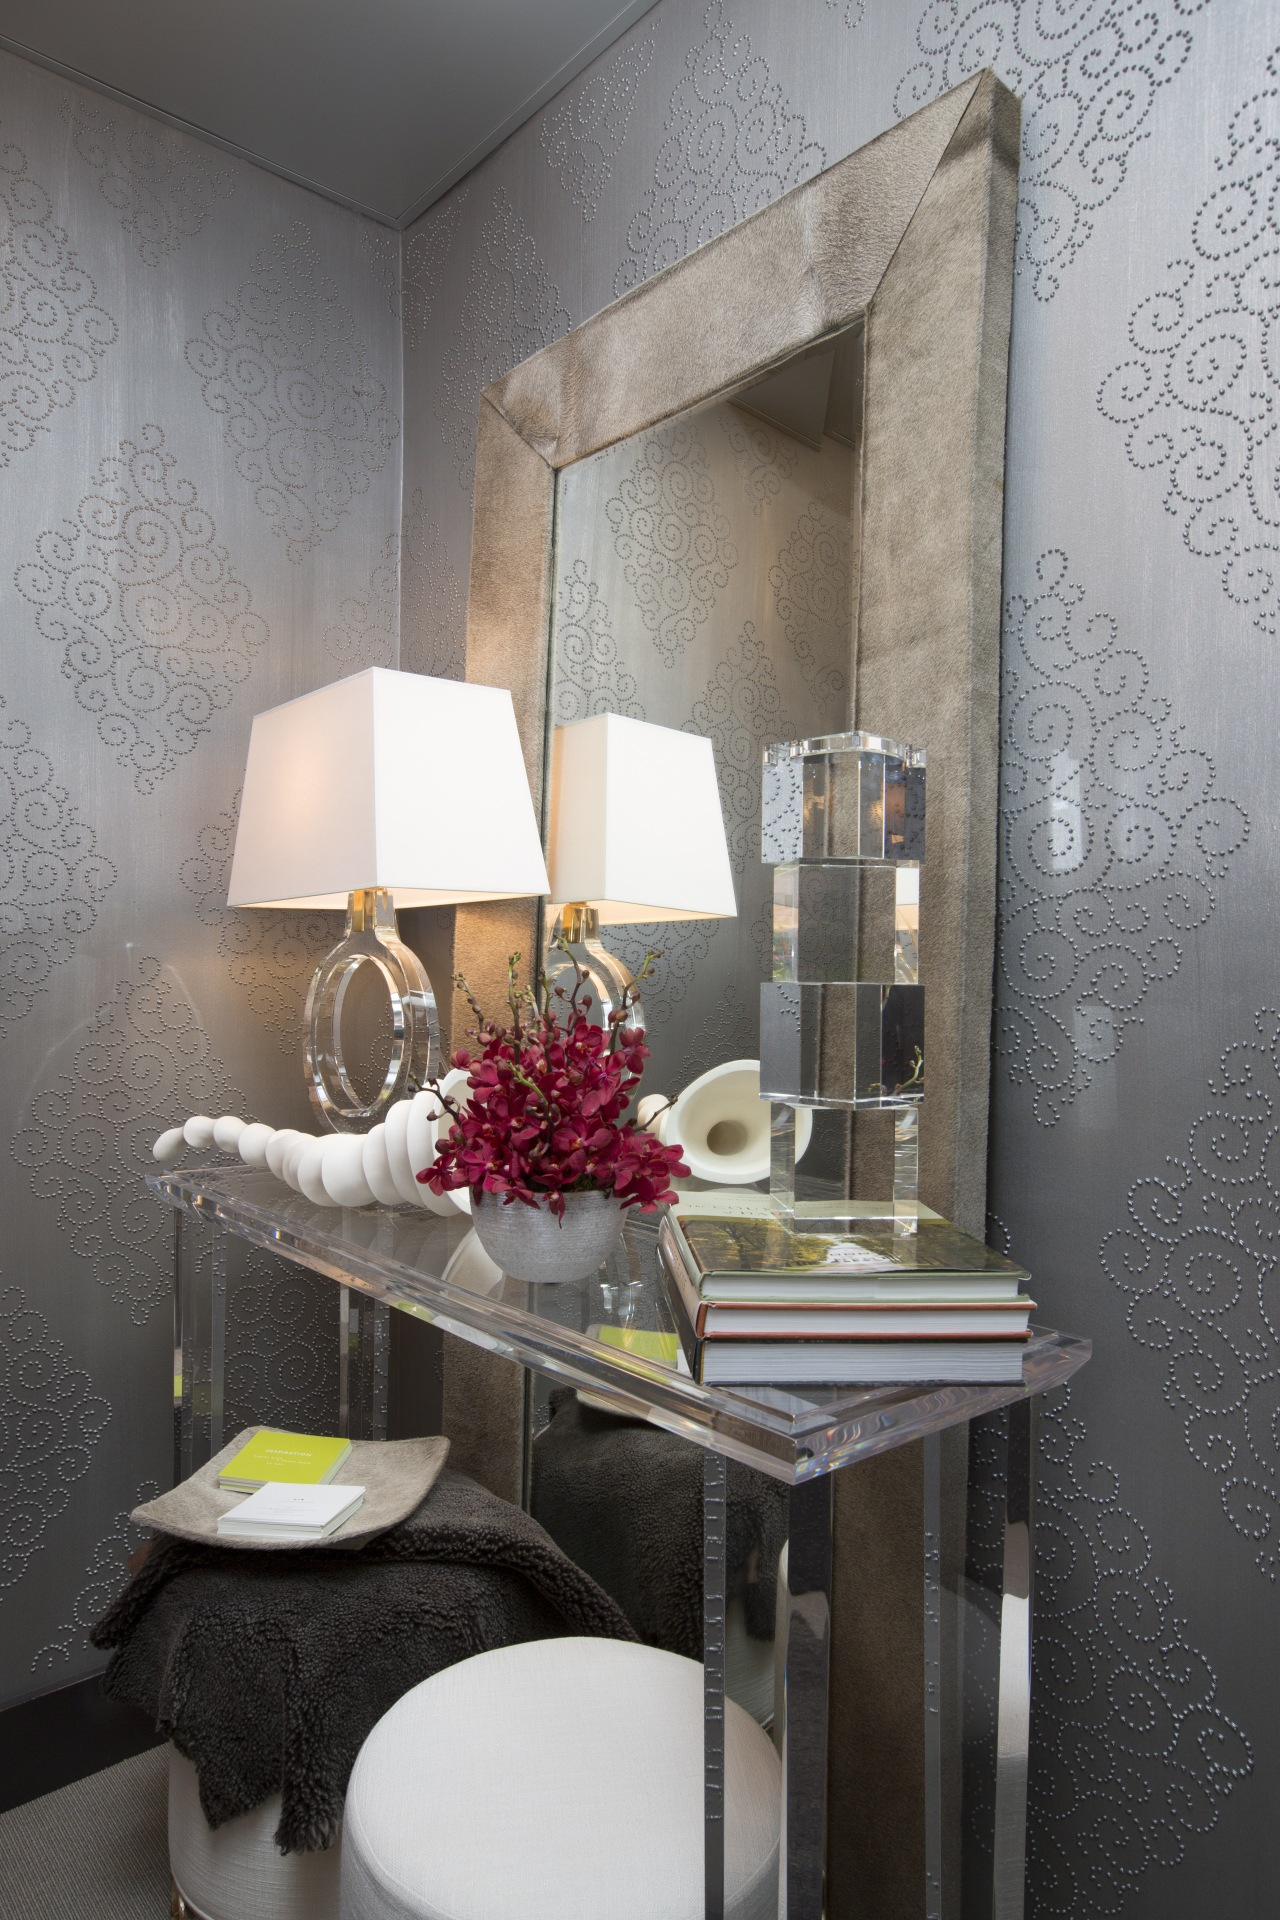 The clear acrylic table in this powder room chair, furniture, home, interior design, room, table, wall, gray, black